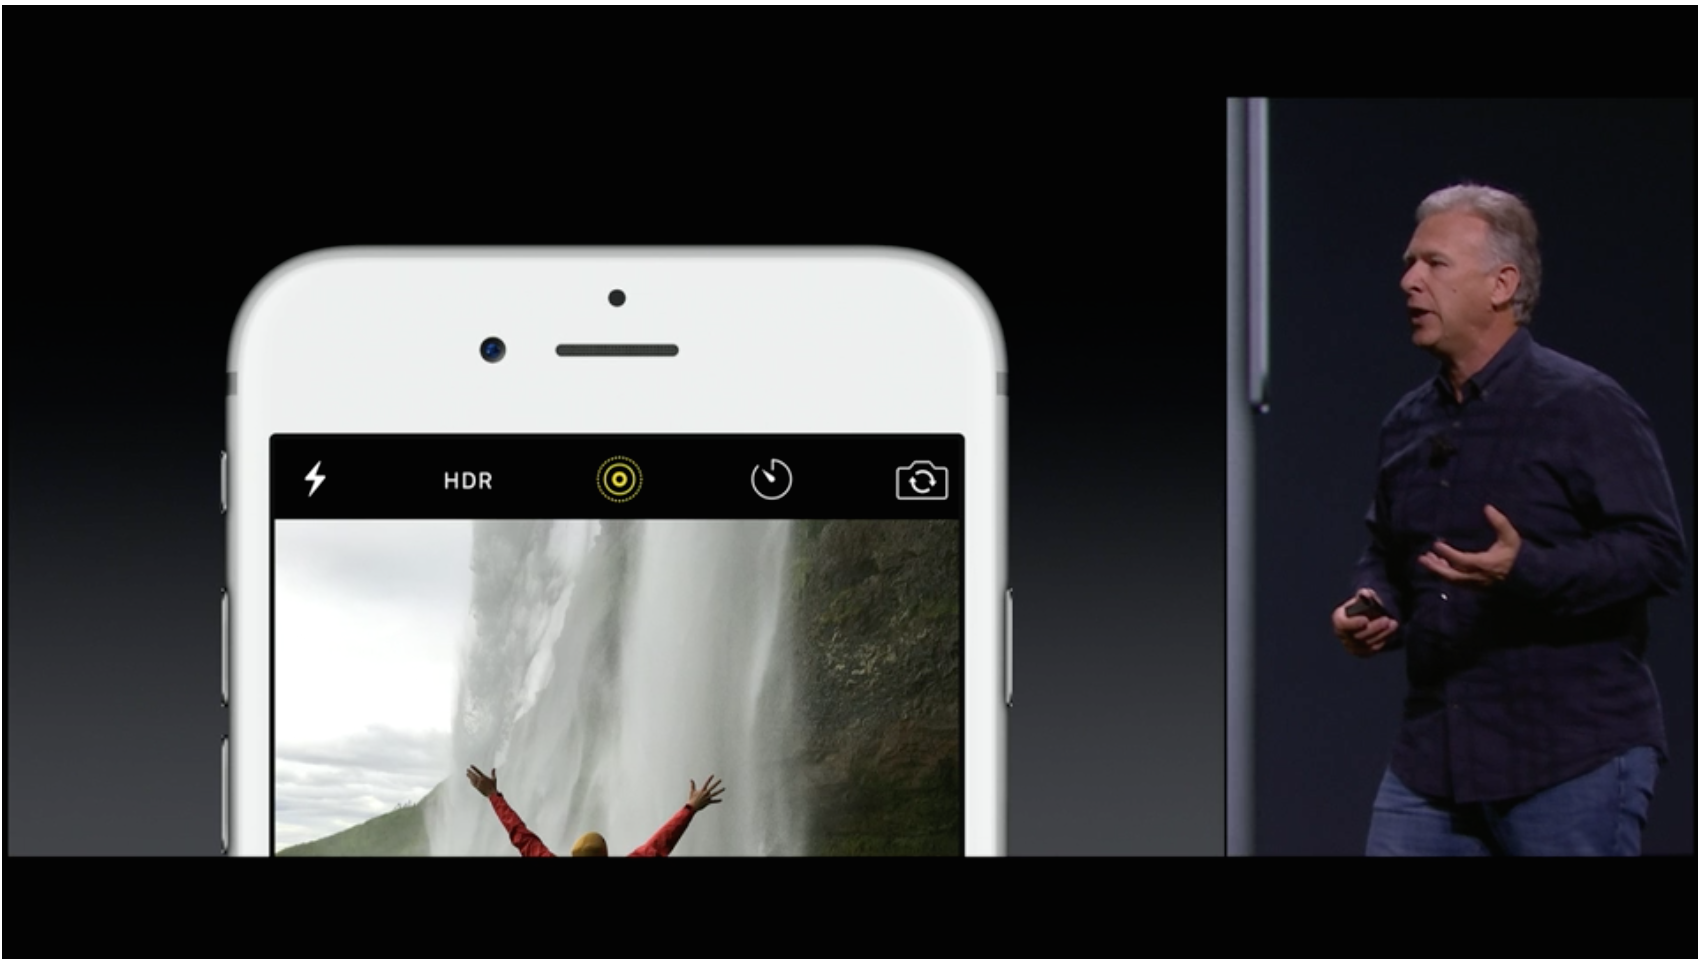 Live photo feature - taking 1.5 seconds of footage from before the shutter.